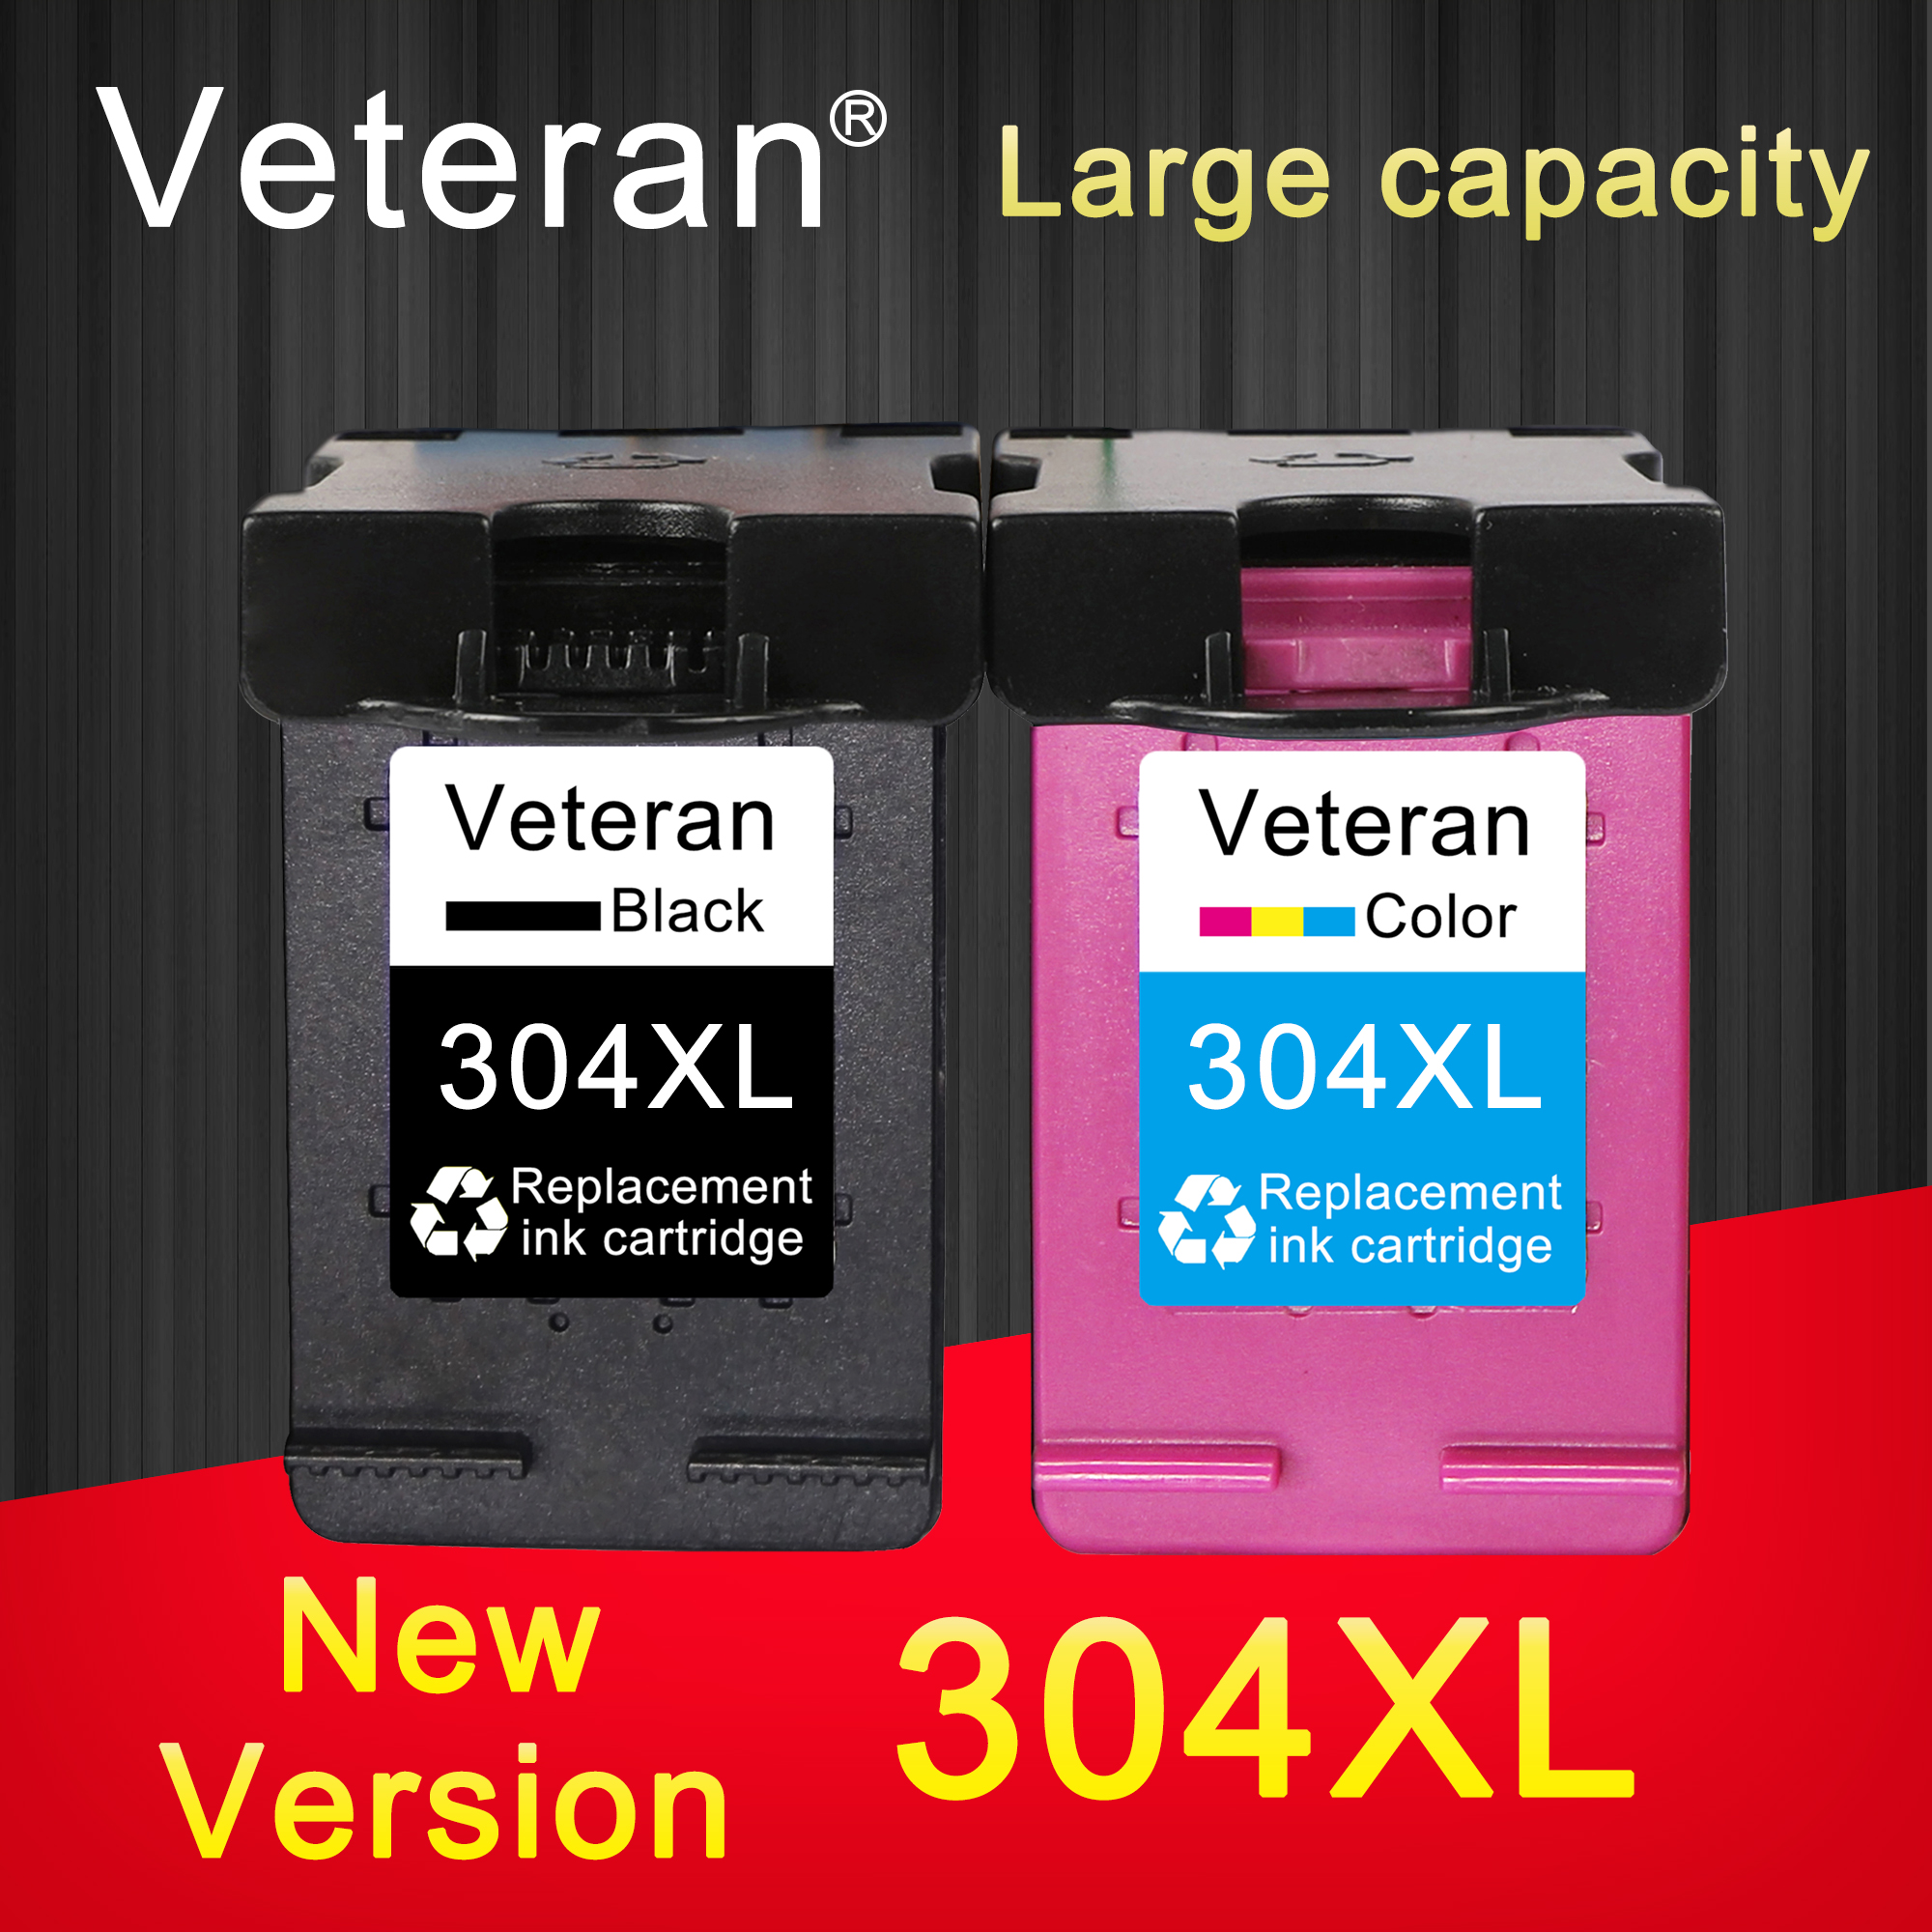 Veteran Ink Cartridge 304XL new version for hp304 hp 304 xl deskjet envy 2620 2630 2632 5030 5020 5032 3720 3730 5010 printer